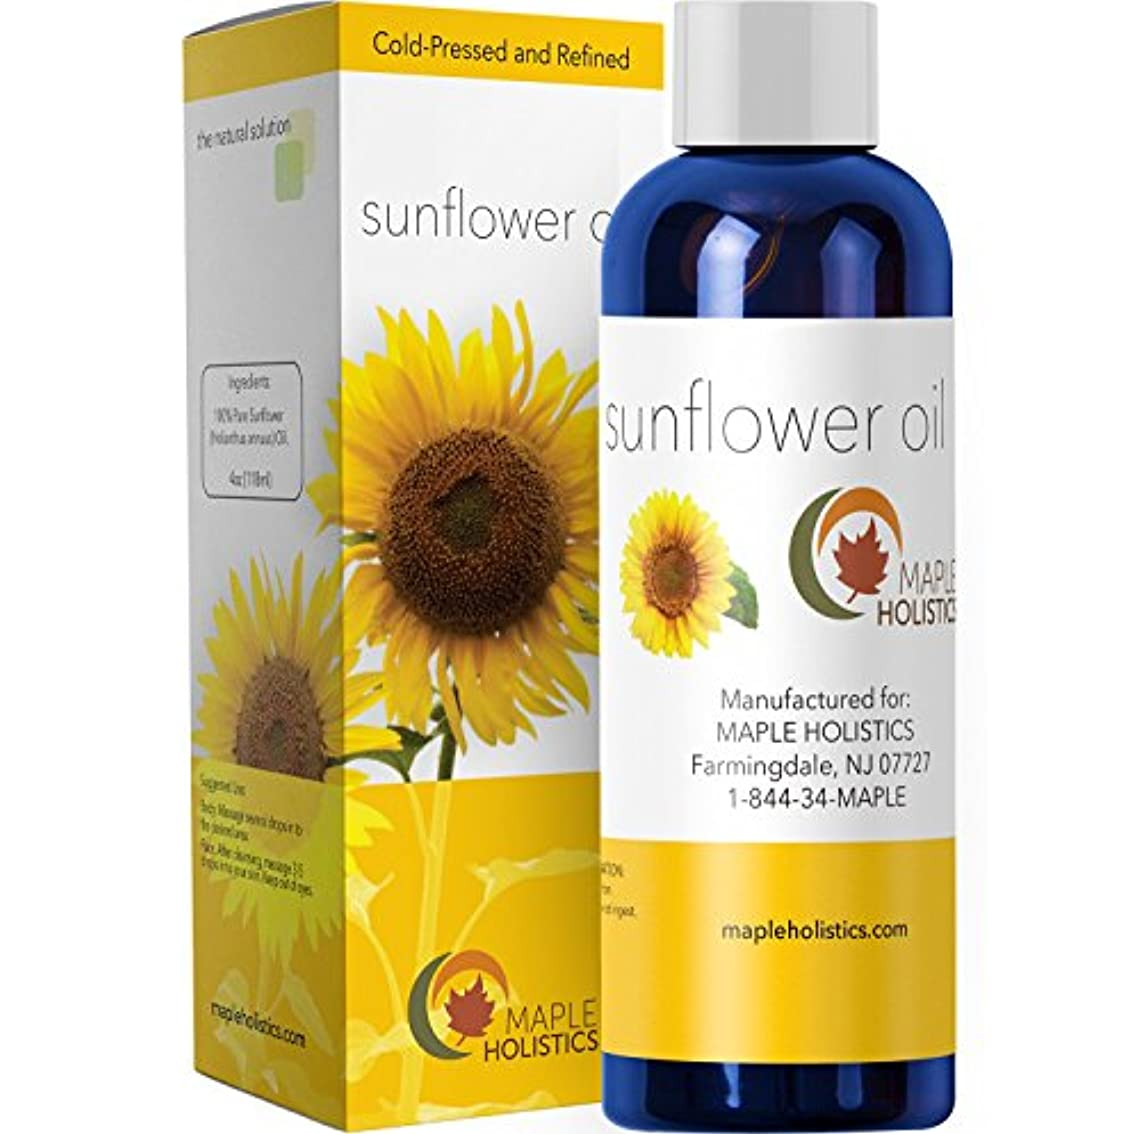 アンペア維持スープPure Sunflower Seed Oil - Cold Pressed for Greatest Efficacy - Use on Hair, Skin & Body for Advanced Hydration...